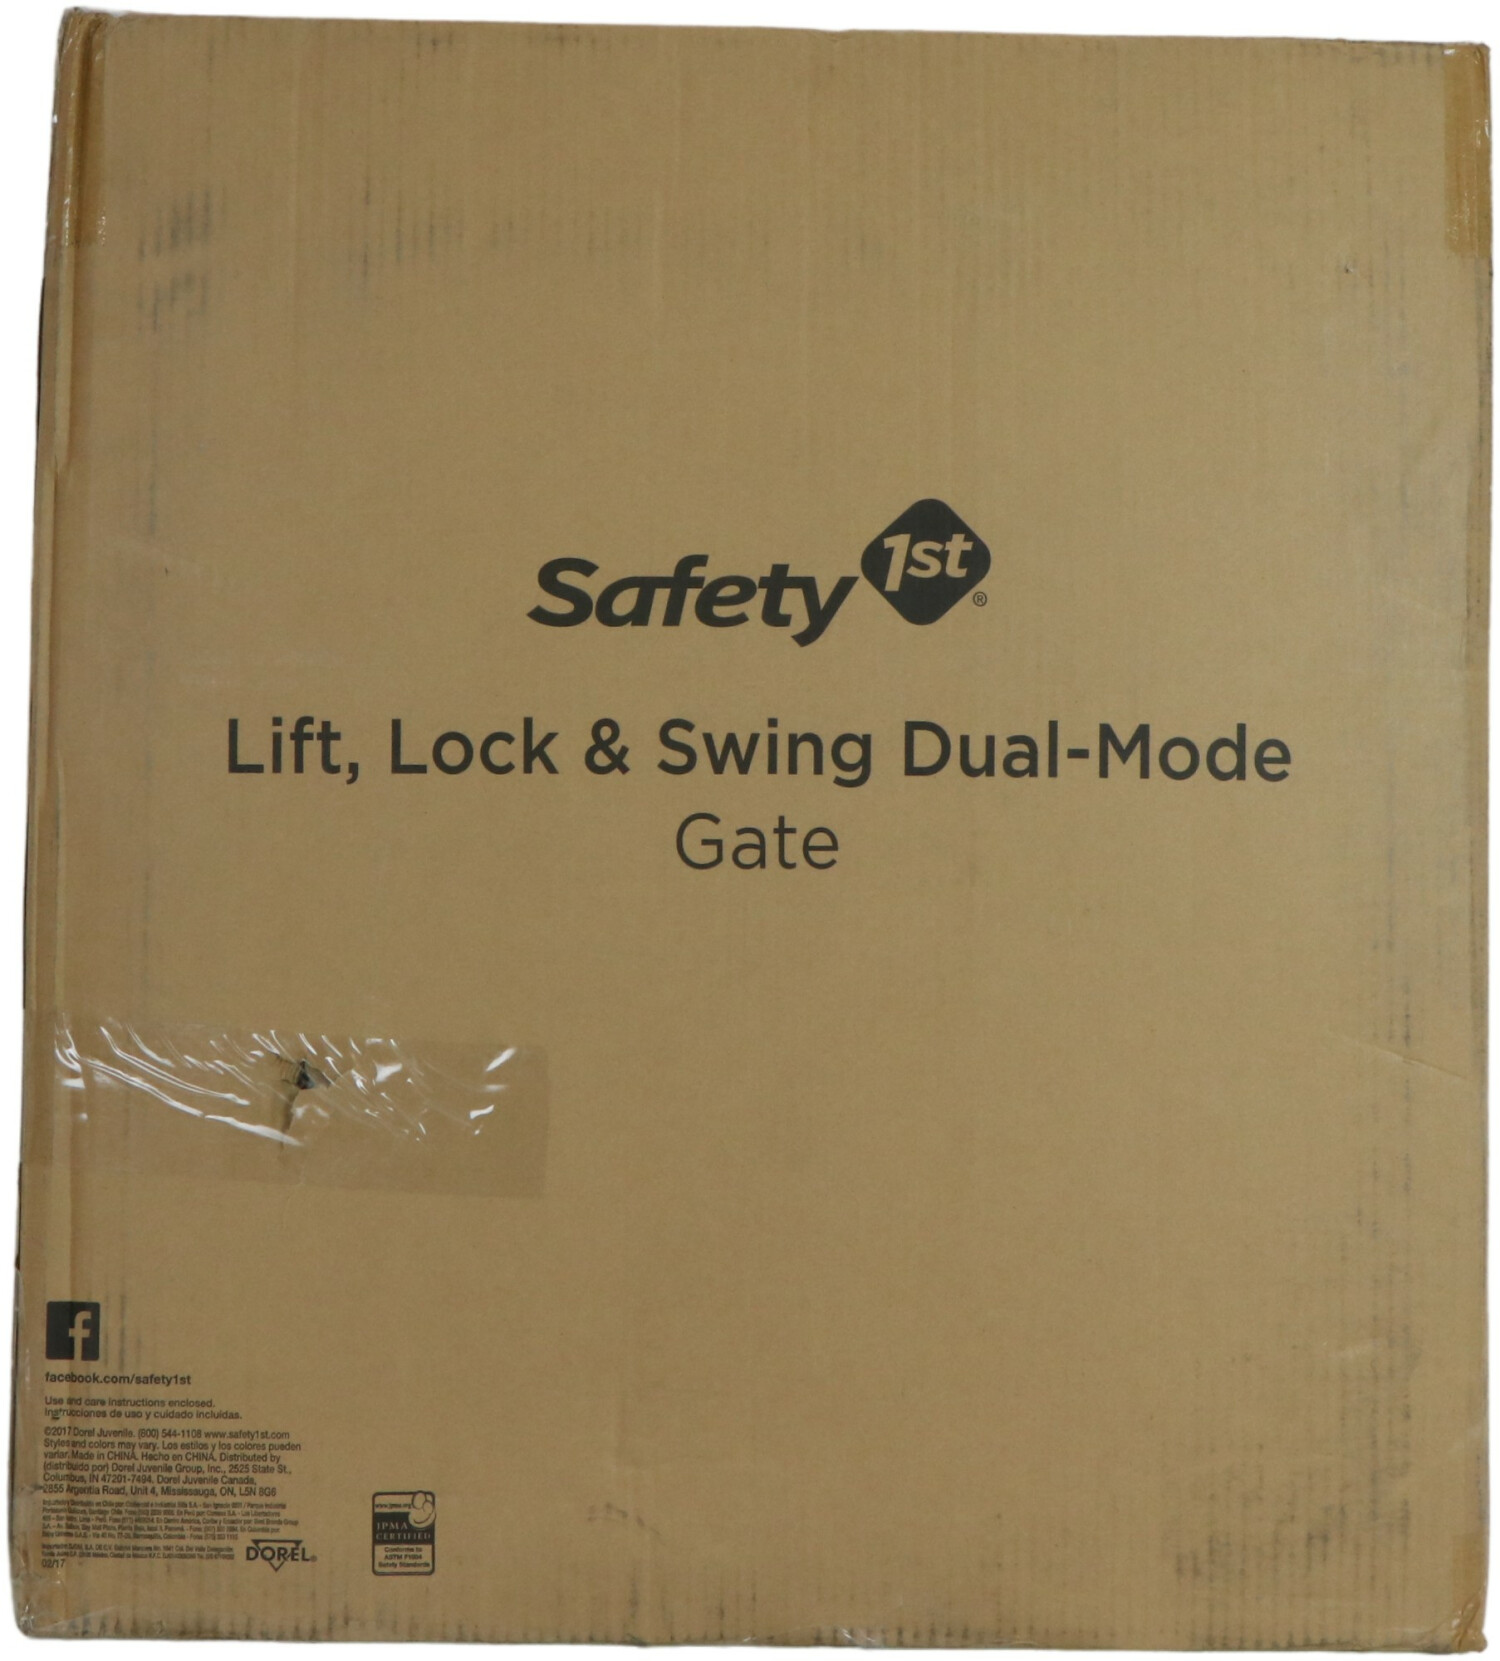 Safety 1St Lift Lock And Swing Dual Mode Gate GA048TAP1A